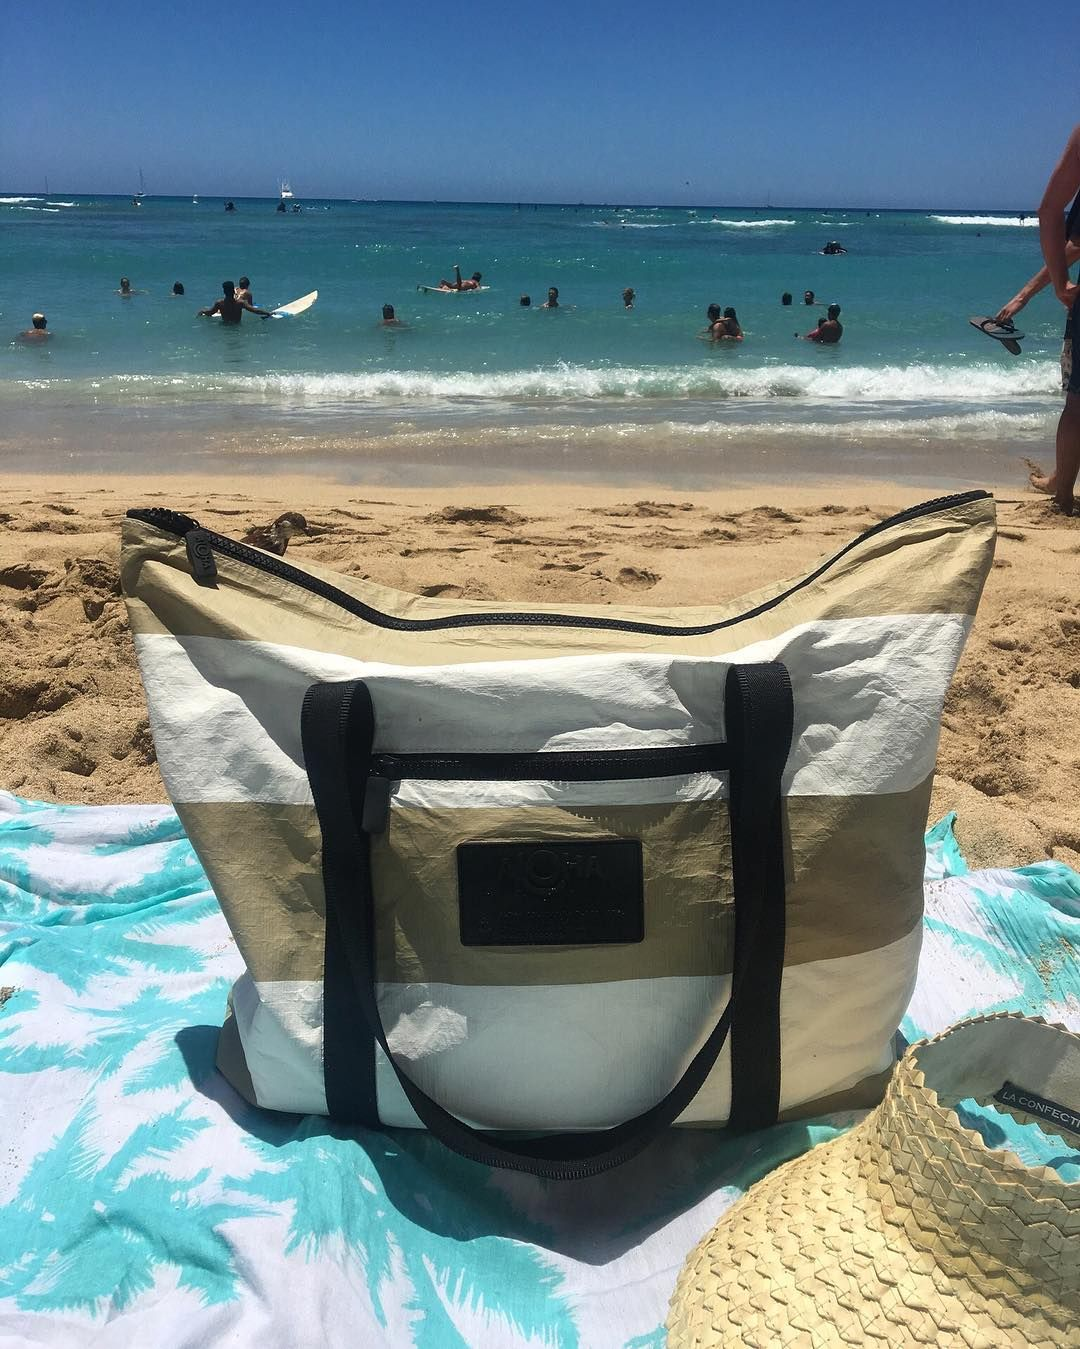 Meet ALOHA Collection Splash-proof bags for all of life's adventures! PC: @alohacollection 🤙🏼🌺🌴 Blue skies + blue water + tan lines = a perfect Waikiki day 🌊 Shop the site to get your Byron Bay zippered tote for making tan lines and beachside memories of your own! 🌈🌴💦🌺🏄♀️🍹 #alohacollection #waikiki #travellightwithus #lethawaiihappen 🔥🔥🔥Hawaii Luau Company- Hawaii's Premiere Corporate Event, Luau, Wedding and Entertainment Company.  www.hawaiiluaucompany.com   #hawaiiluaucompany#